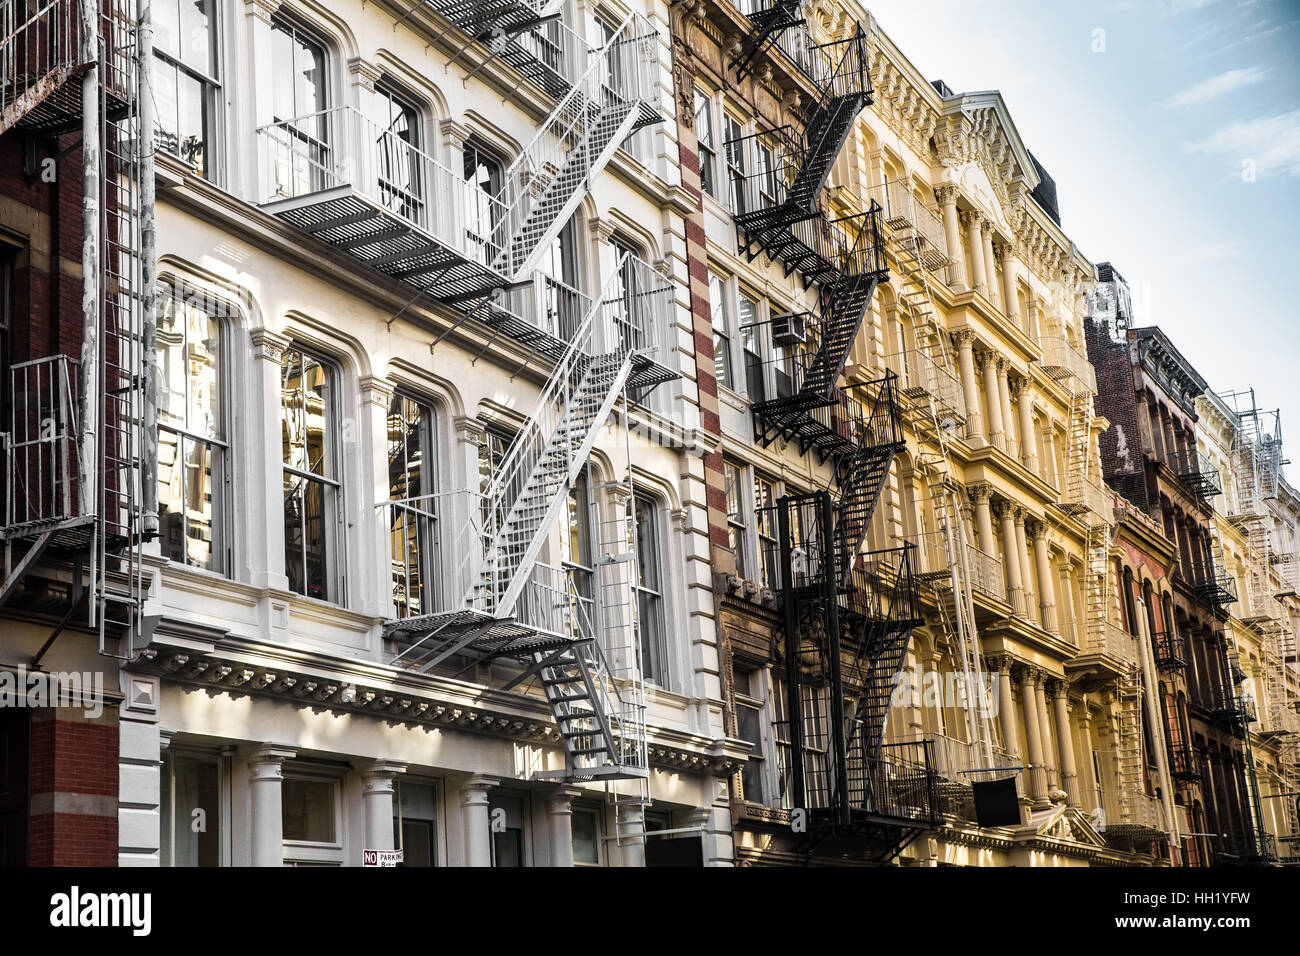 New York City View Of Exterior Facade On Ornate Old